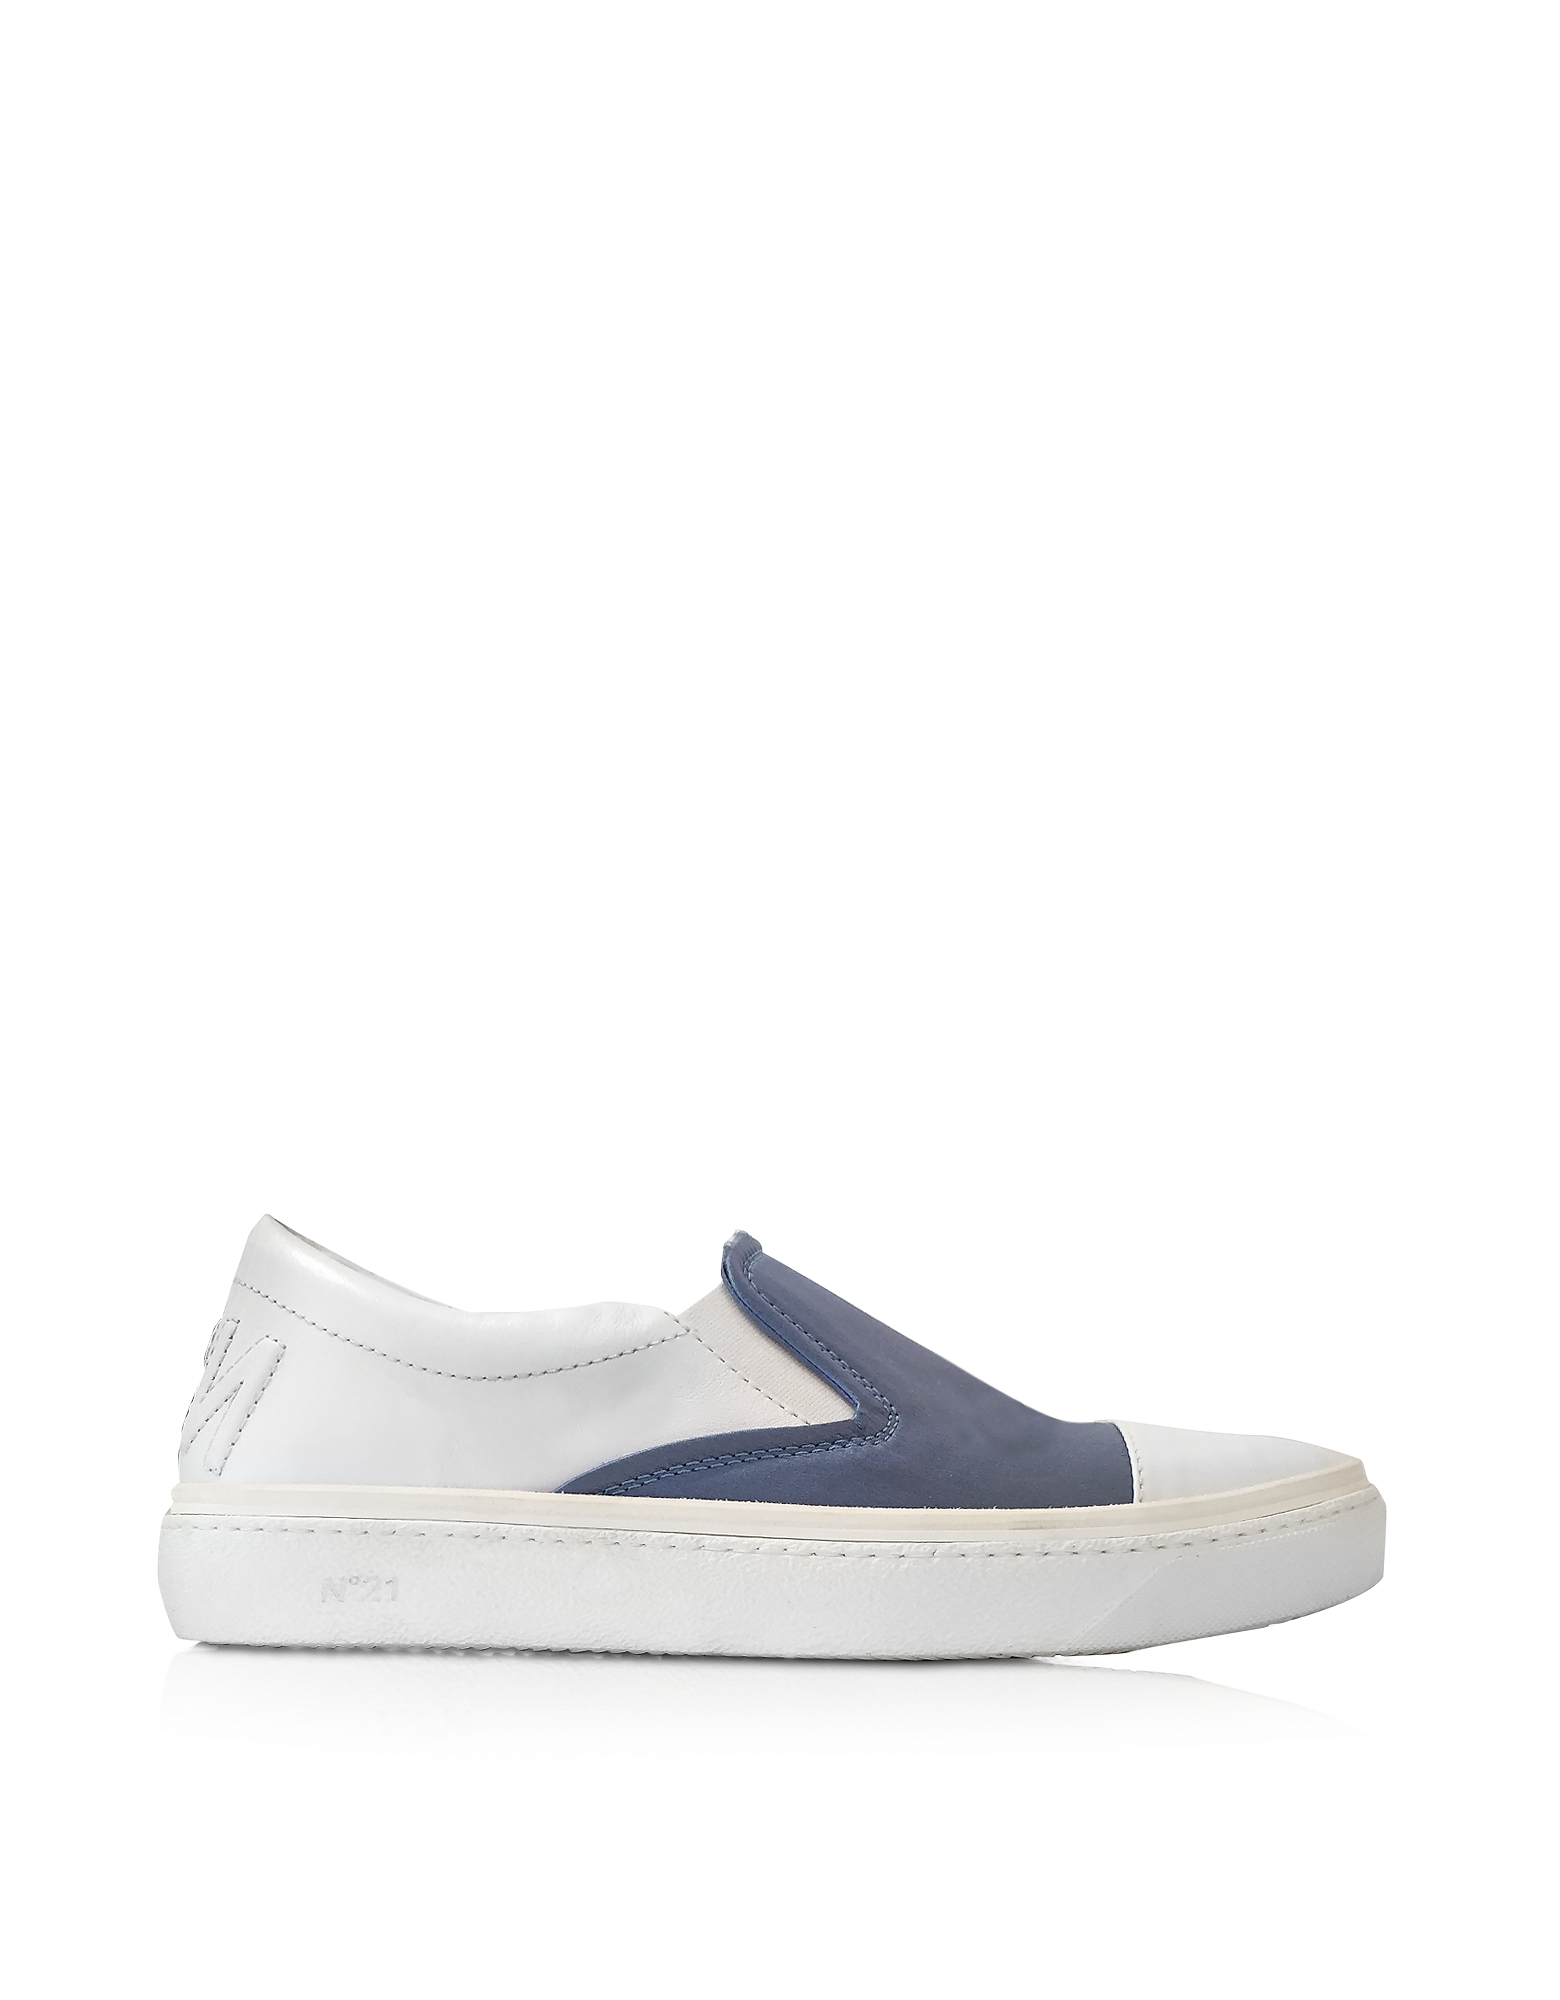 N°21 Shoes, Cerulean Blue Satin & White Leather Slip-on Sneaker